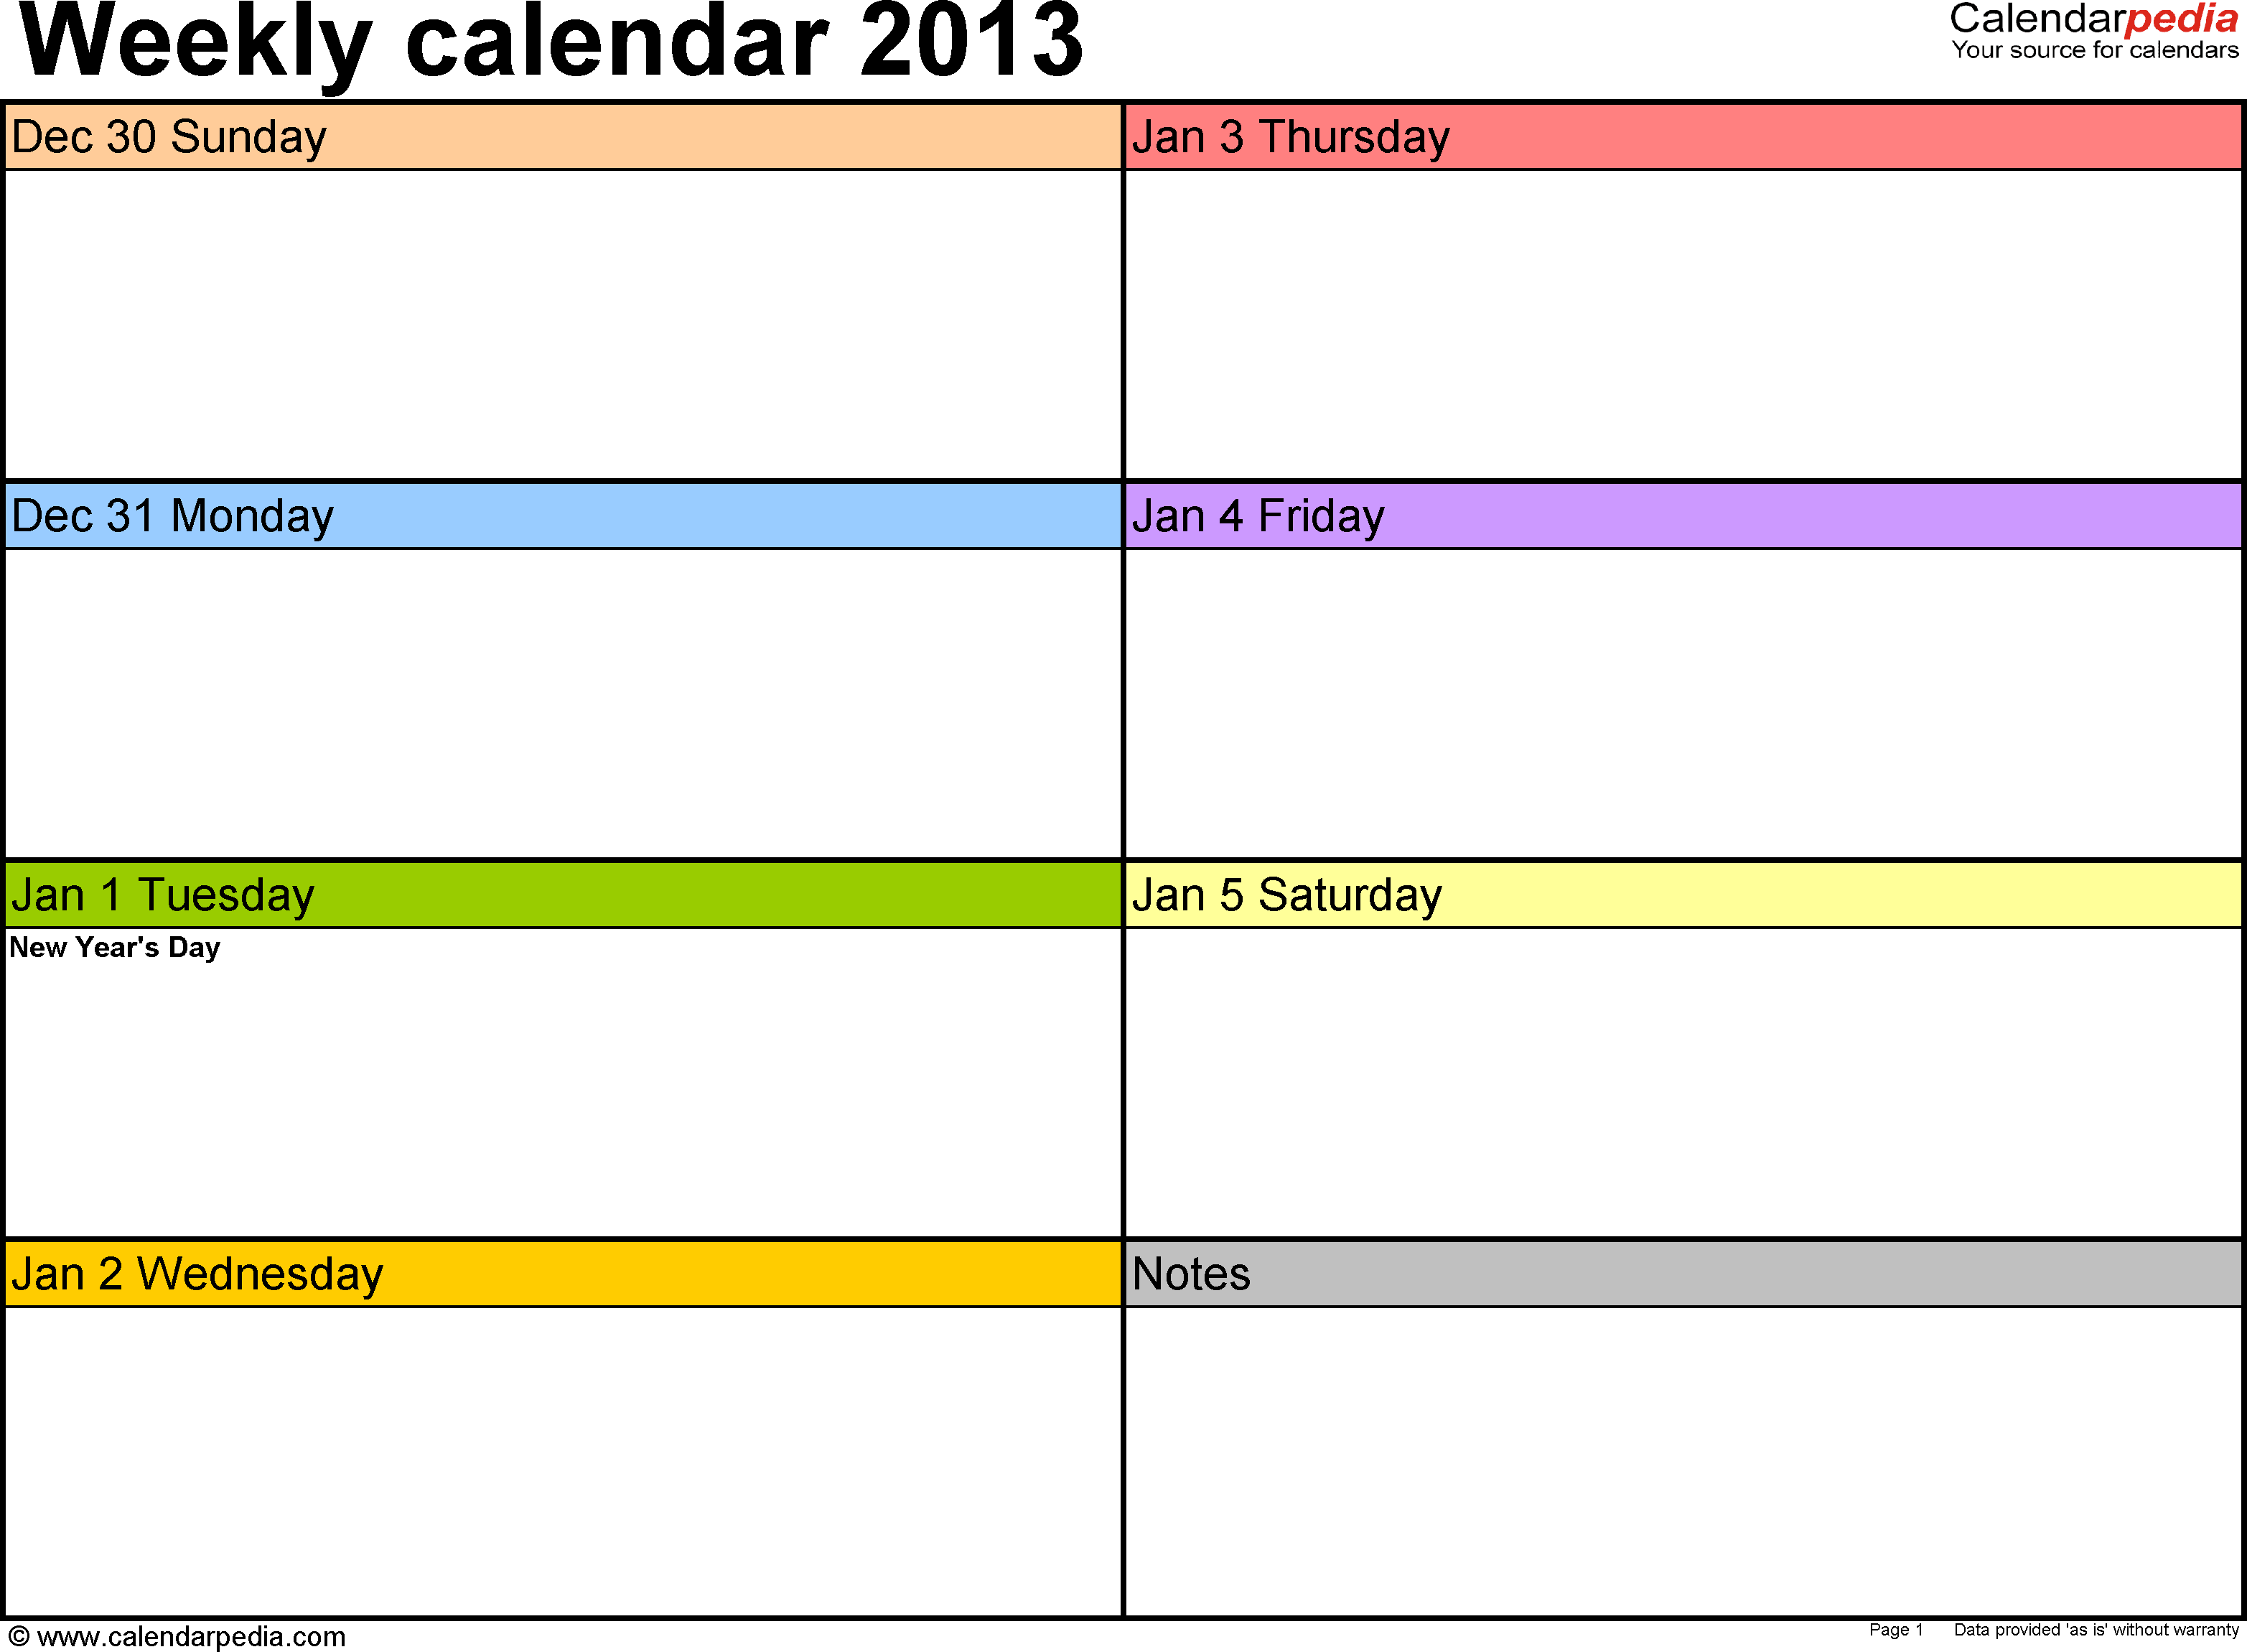 Weekly calendar 2013: template for Word version 2, landscape, 53 pages, in color, week divided into 2 columns (7 days and one field for notes)